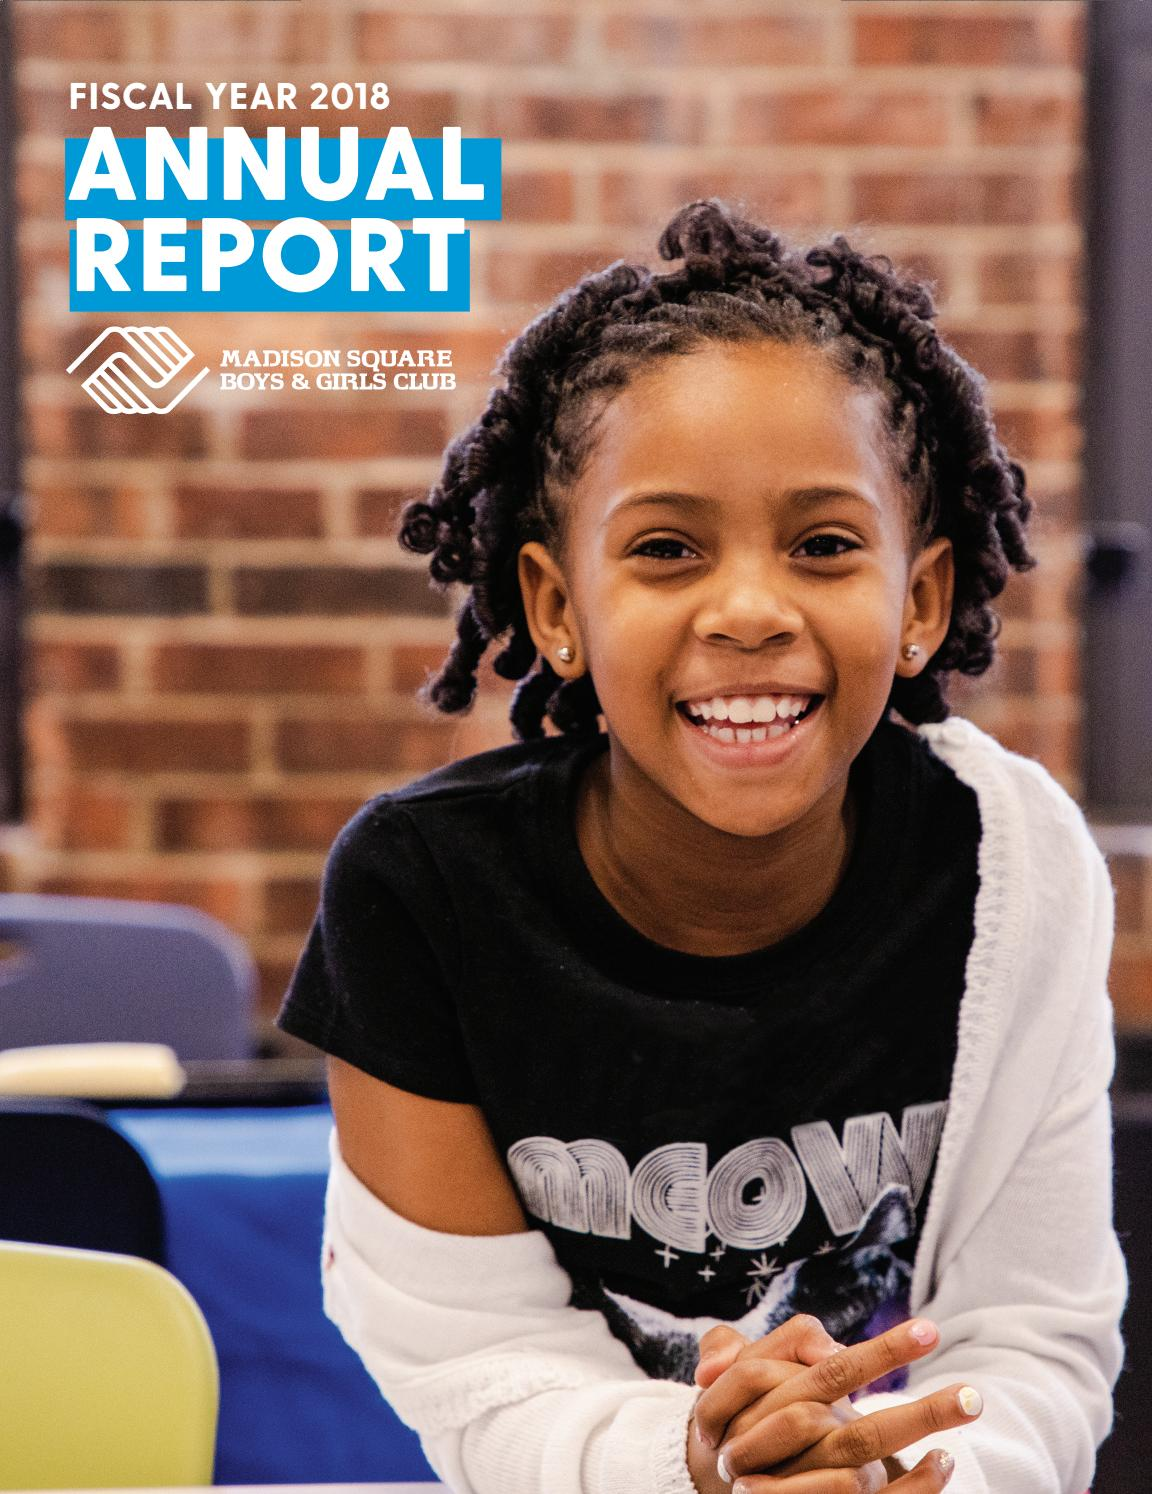 FY18 Annual Report by Madison Square Boys & Girls Club - issuu